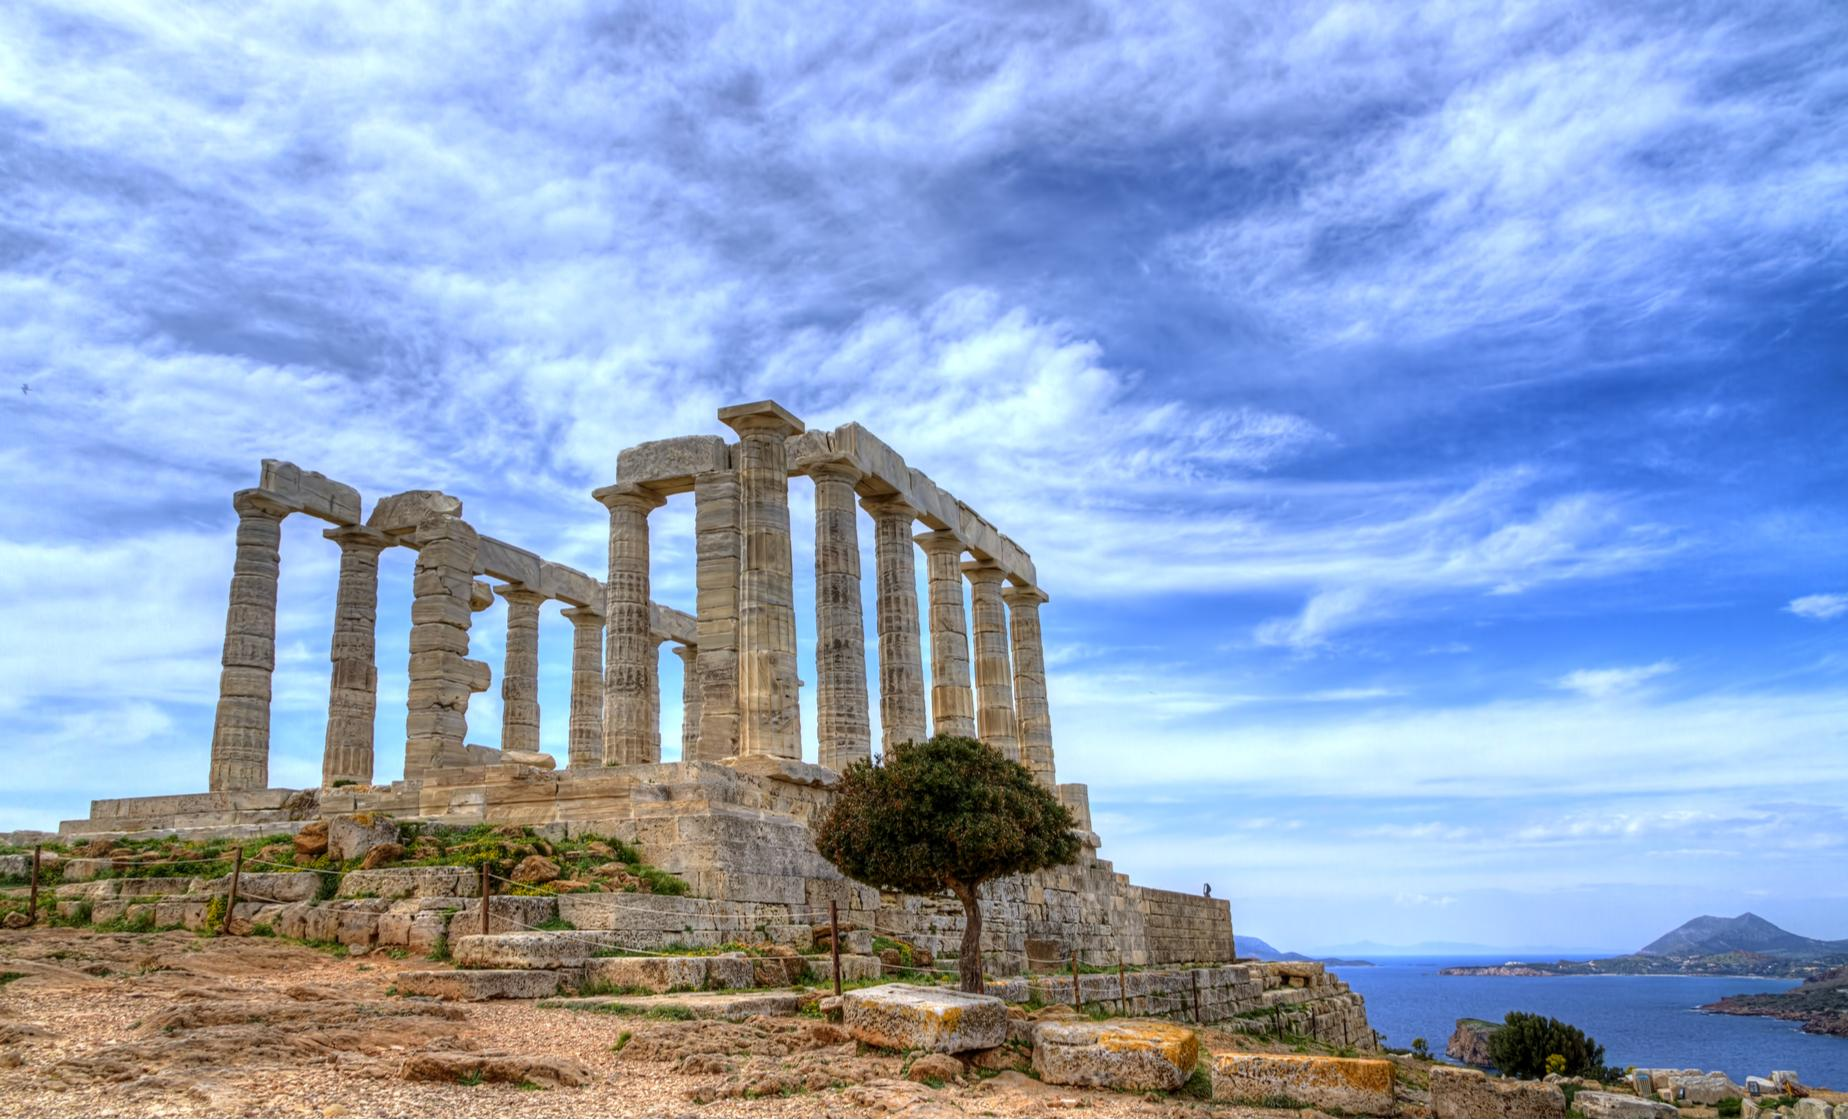 Best Places To Travel Europe April: Cape Sounion Day Tour Cruise Excursion From Athens